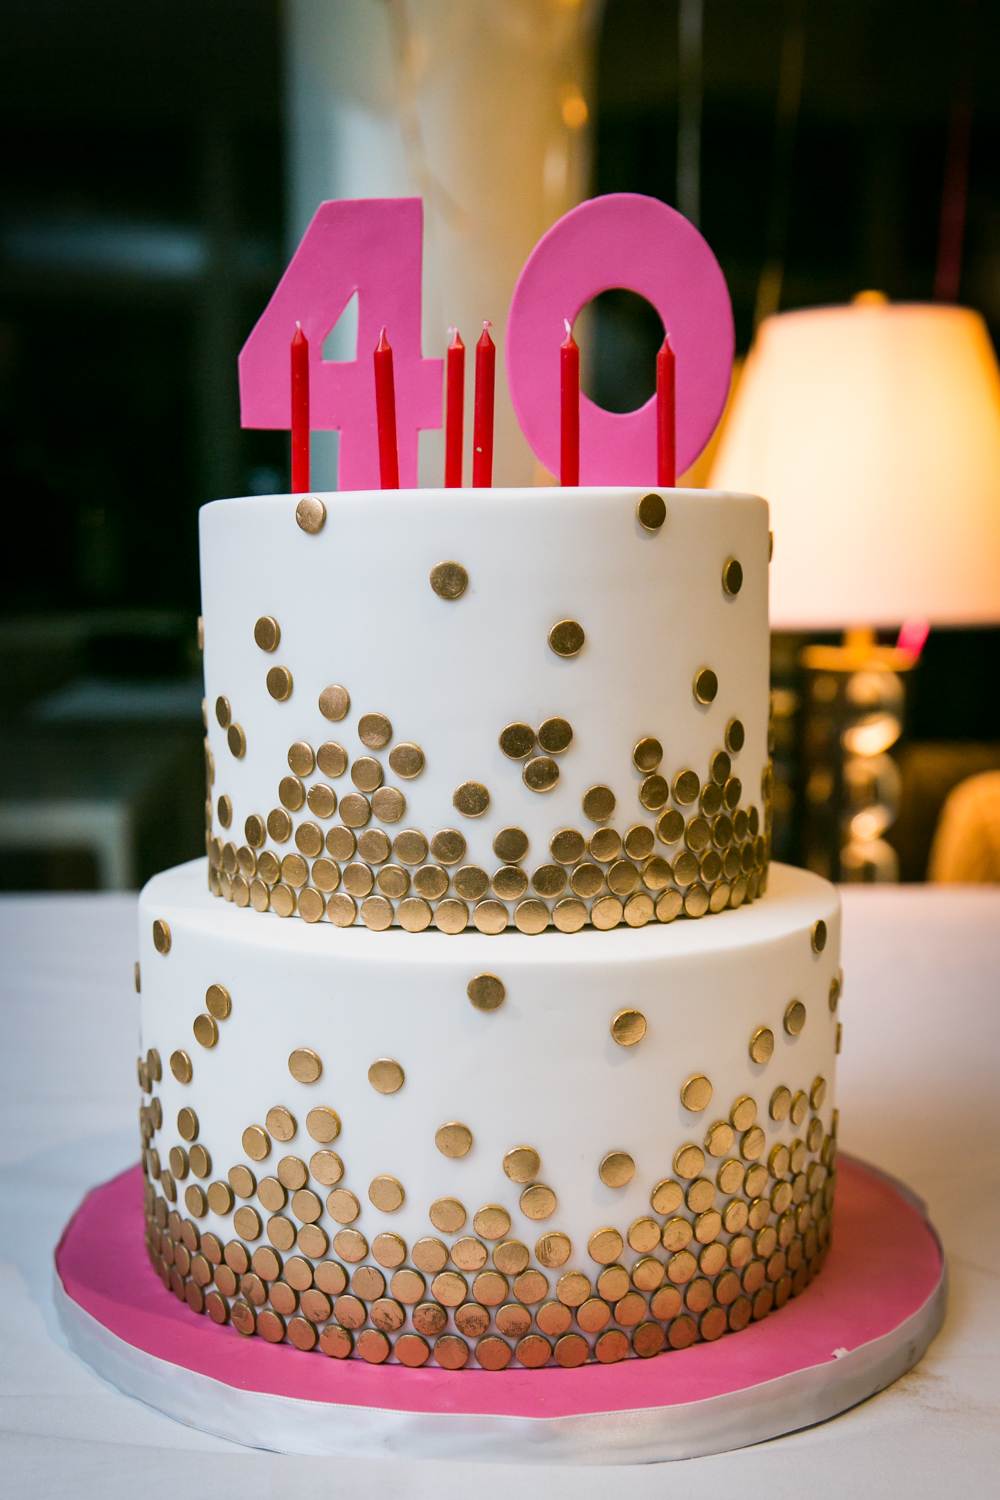 Close up on cake with the number 40 as cake topper